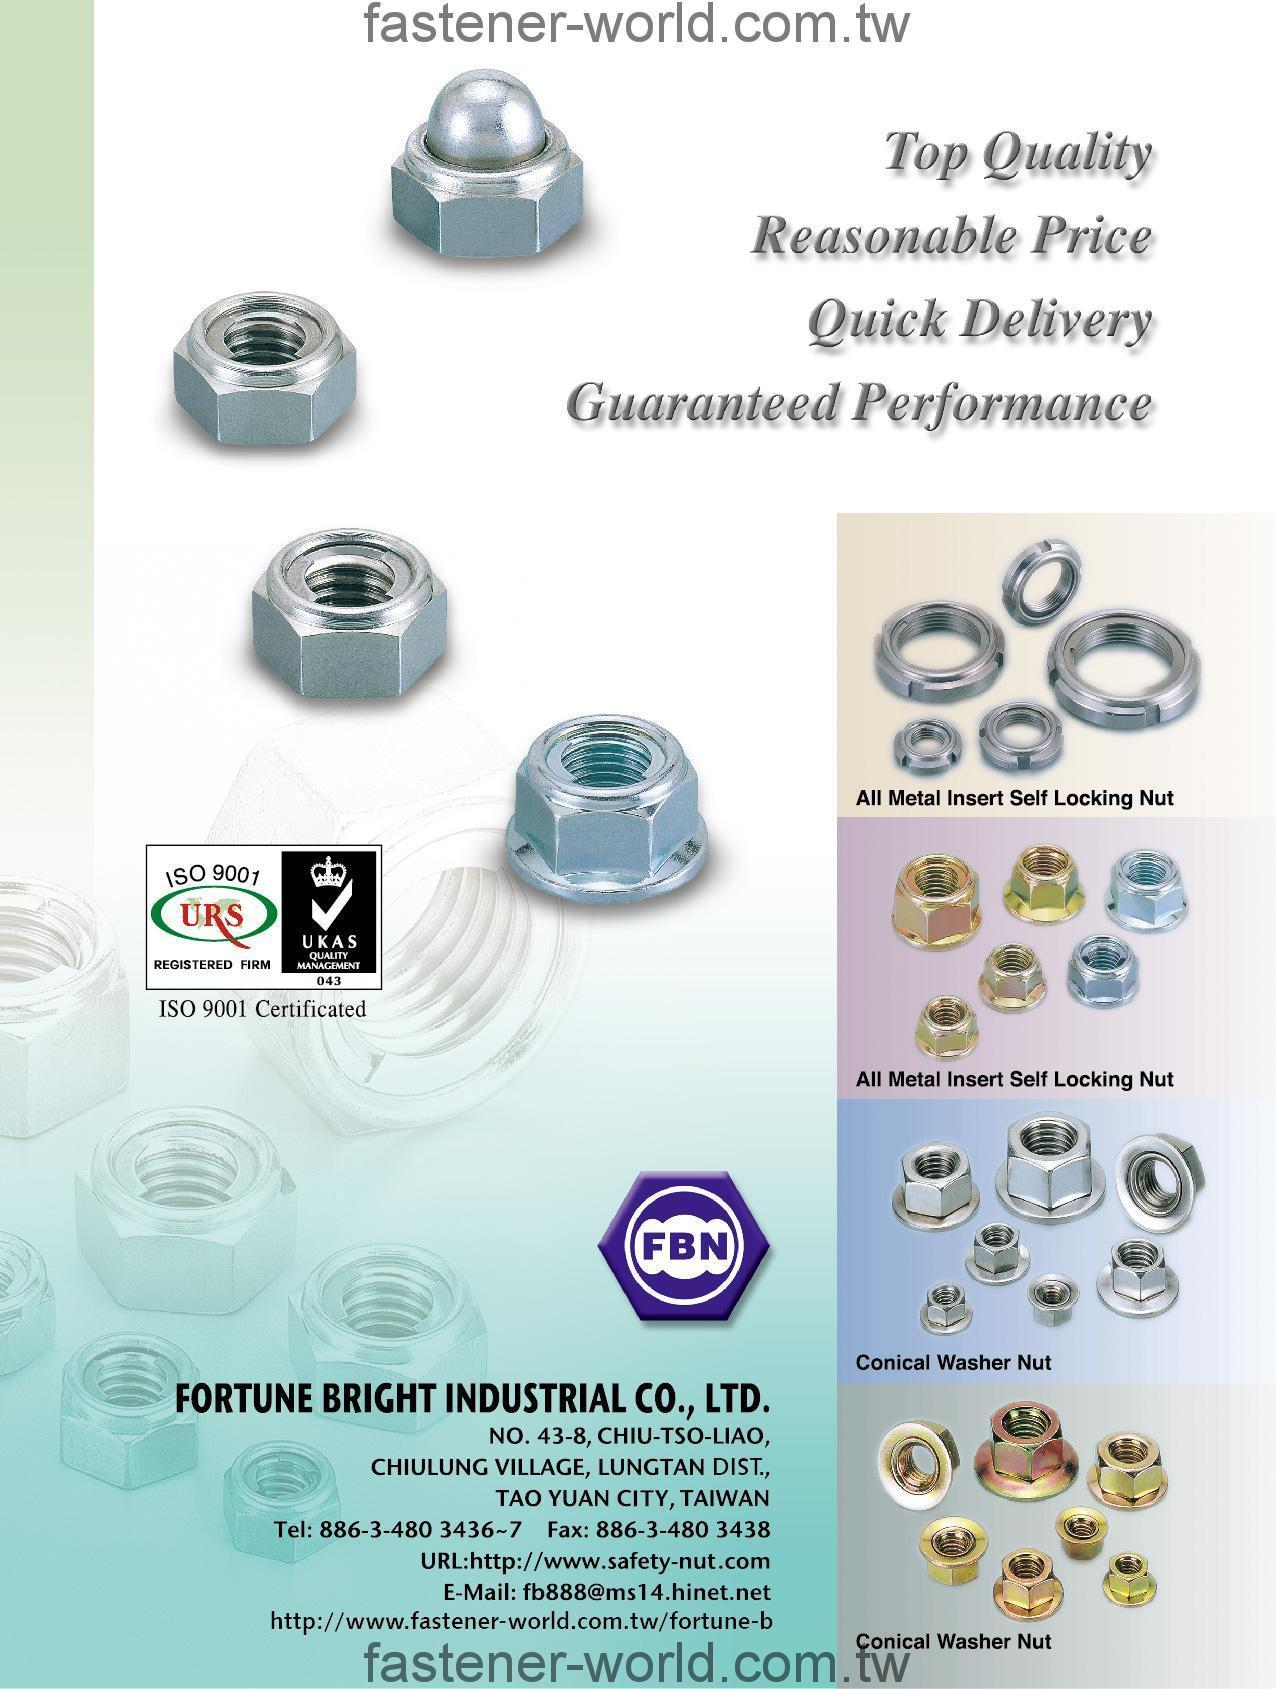 FORTUNE BRIGHT INDUSTRIAL CO., LTD.  Online Catalogues